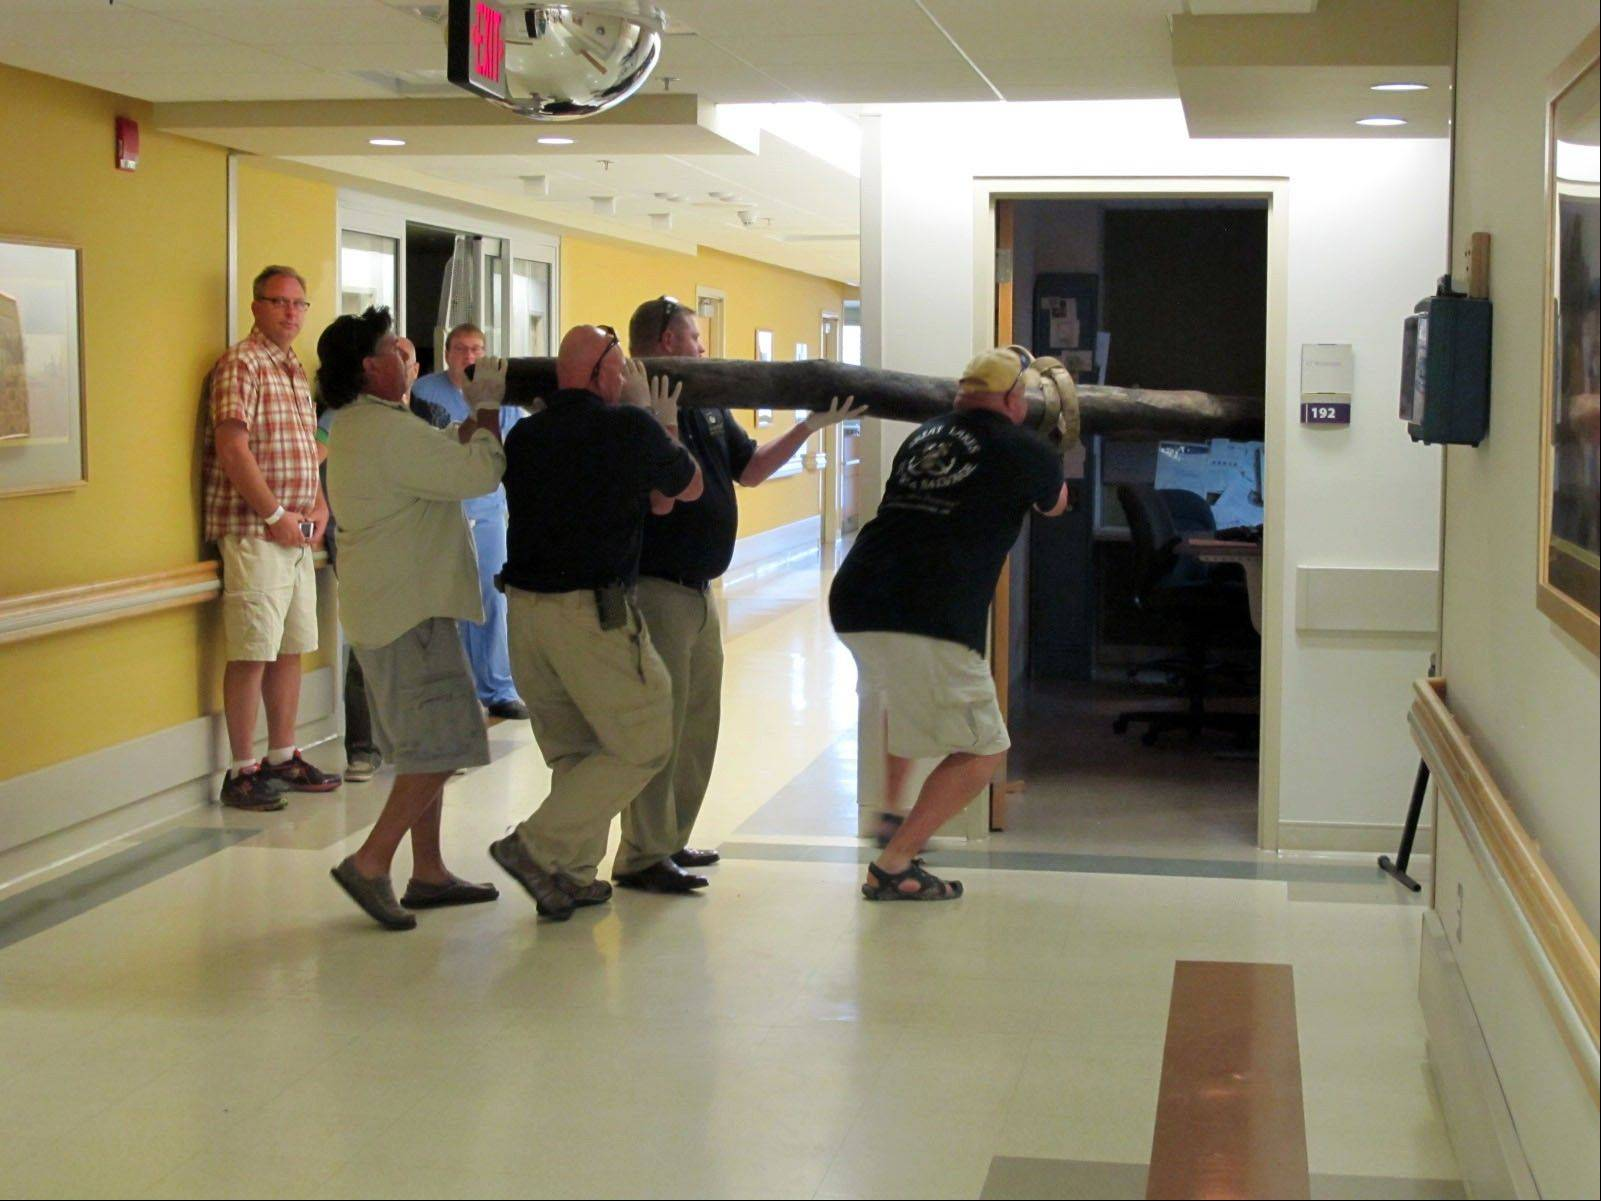 Members of the Great Lakes Exploration Group carry a nearly 400-pound wooden slab into the radiology section of Otsego Memorial Hospital in Gaylord, Mich., for a CT scan to create images of tree rings from its interior, in this photo from Aug. 24.